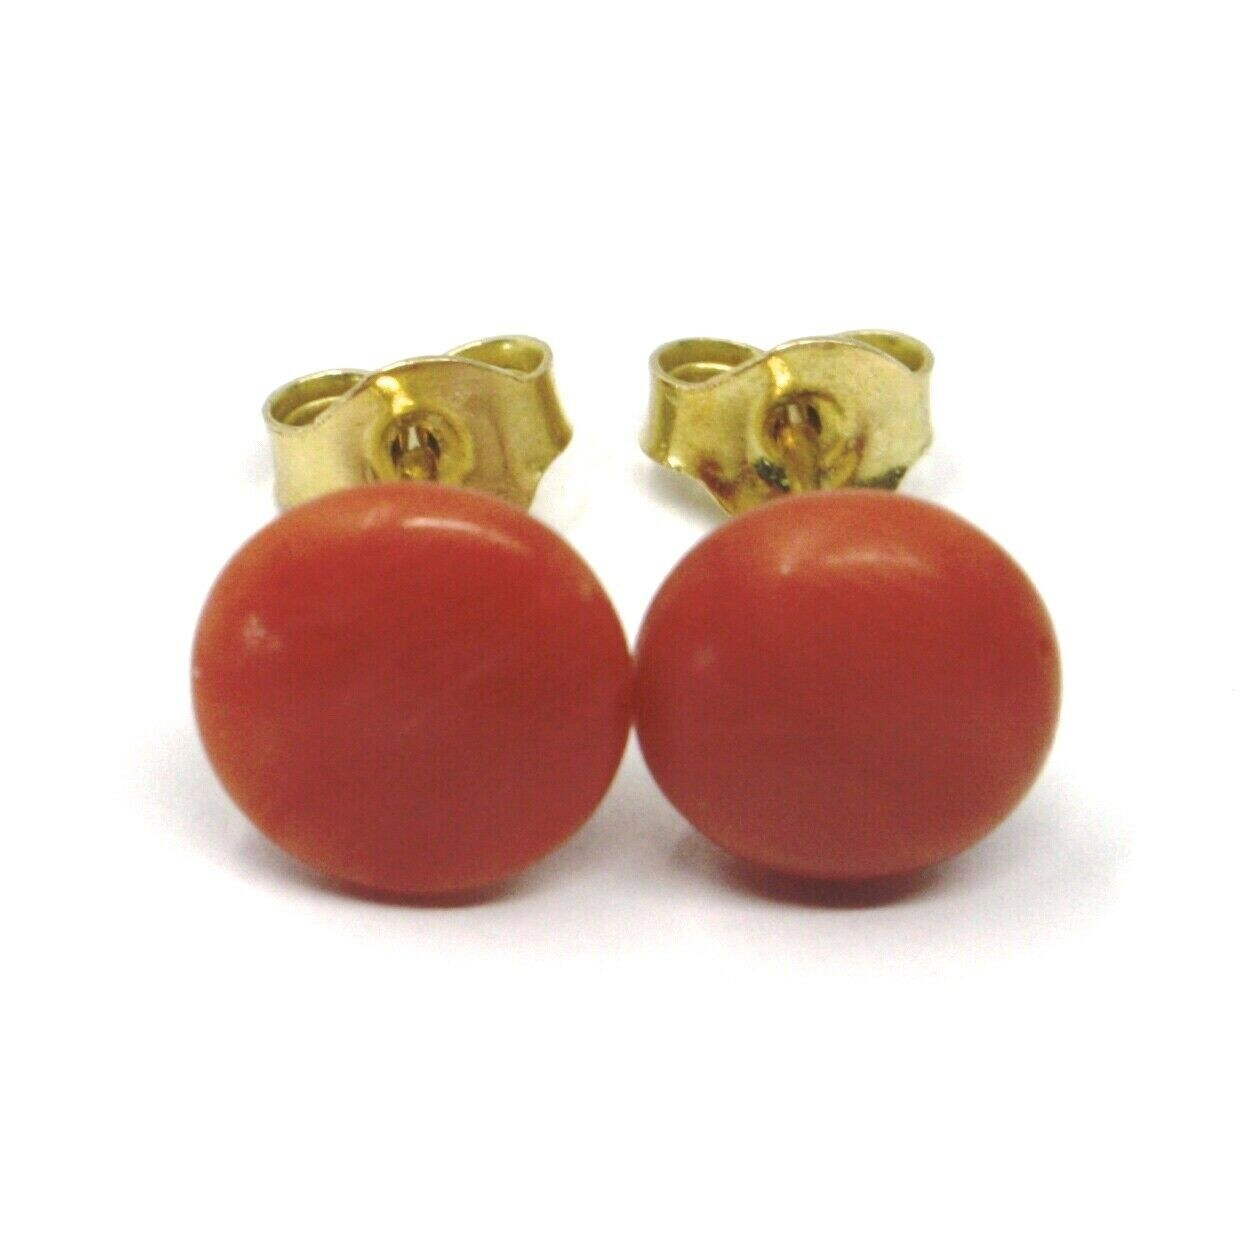 18K YELLOW GOLD HALF SPHERE DISC RED CORAL BUTTON EARRINGS, 9 MM, 0.35 INCHES